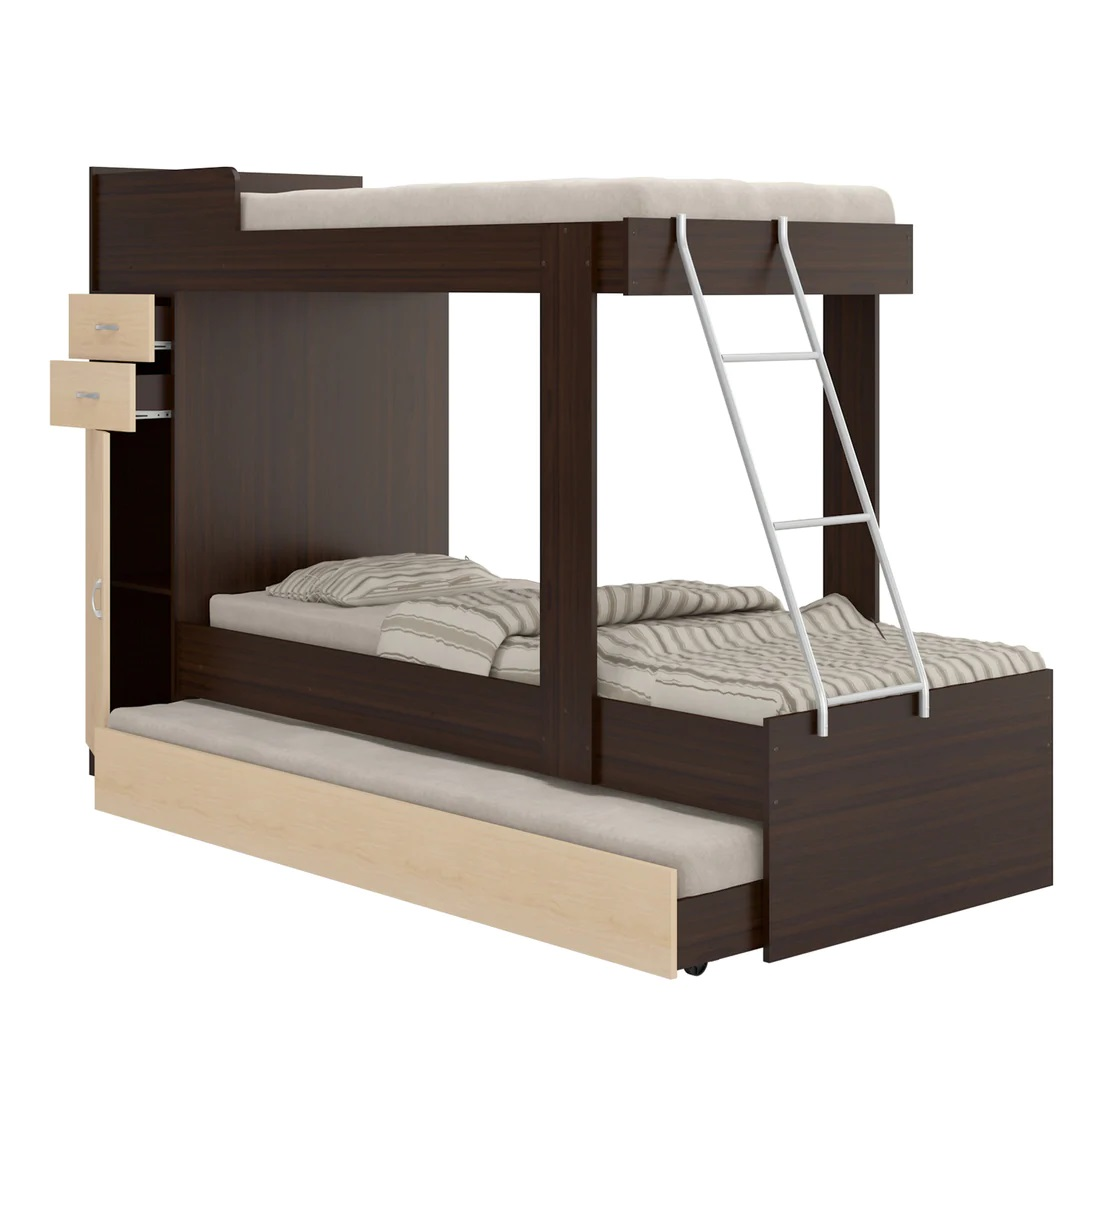 hannah-storage-bunk-bed-with-trundle-in-maple—tobacco-by-casacraft-hannah-storage-bunk-bed-with-tr-vipreo